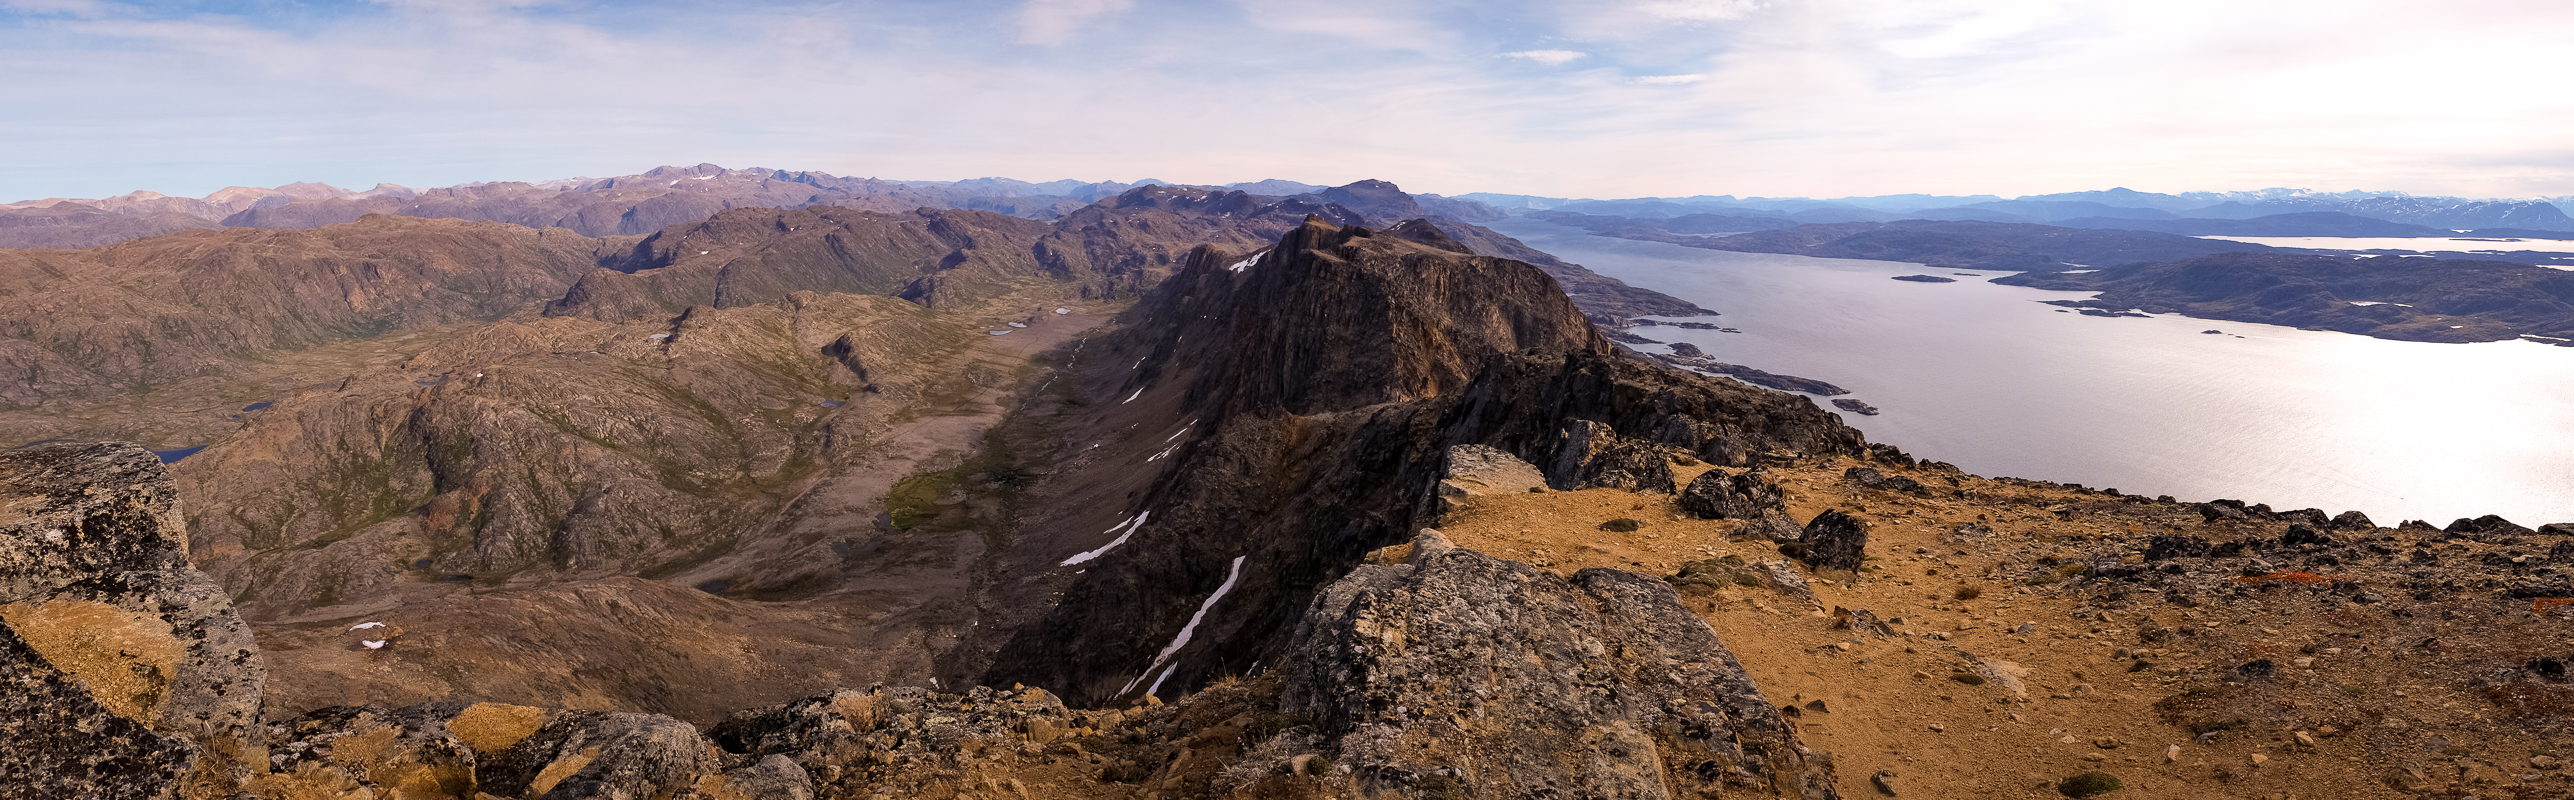 Panorama of ridge view at summit of  Nasaasaaq mountain - Sisimiut, West Greenland